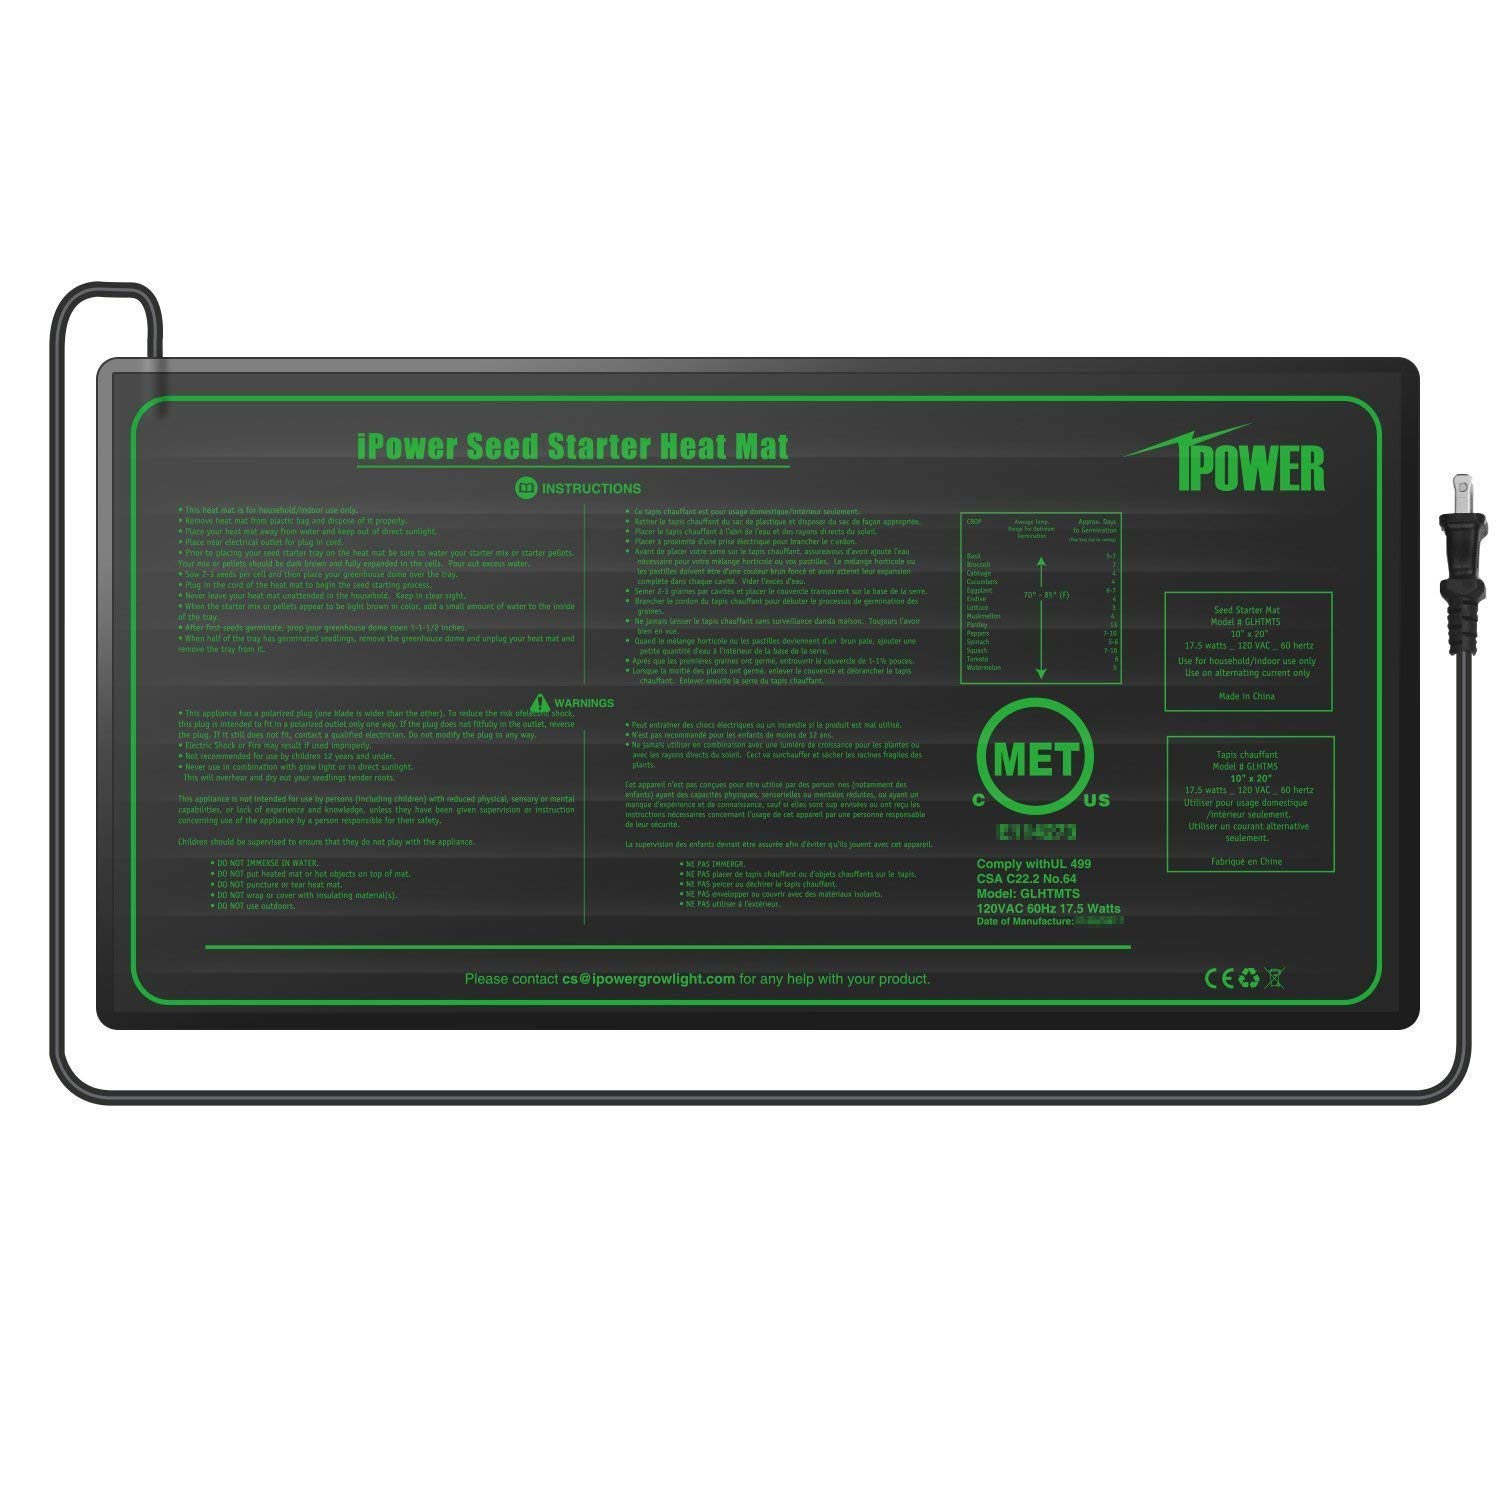 iPower 2 Pack 10'' x 20.5'' Warm Hydroponic Seedling Heat Mat and Digital Thermostat Control Combo Set for Seed Germination, Black by iPower (Image #2)